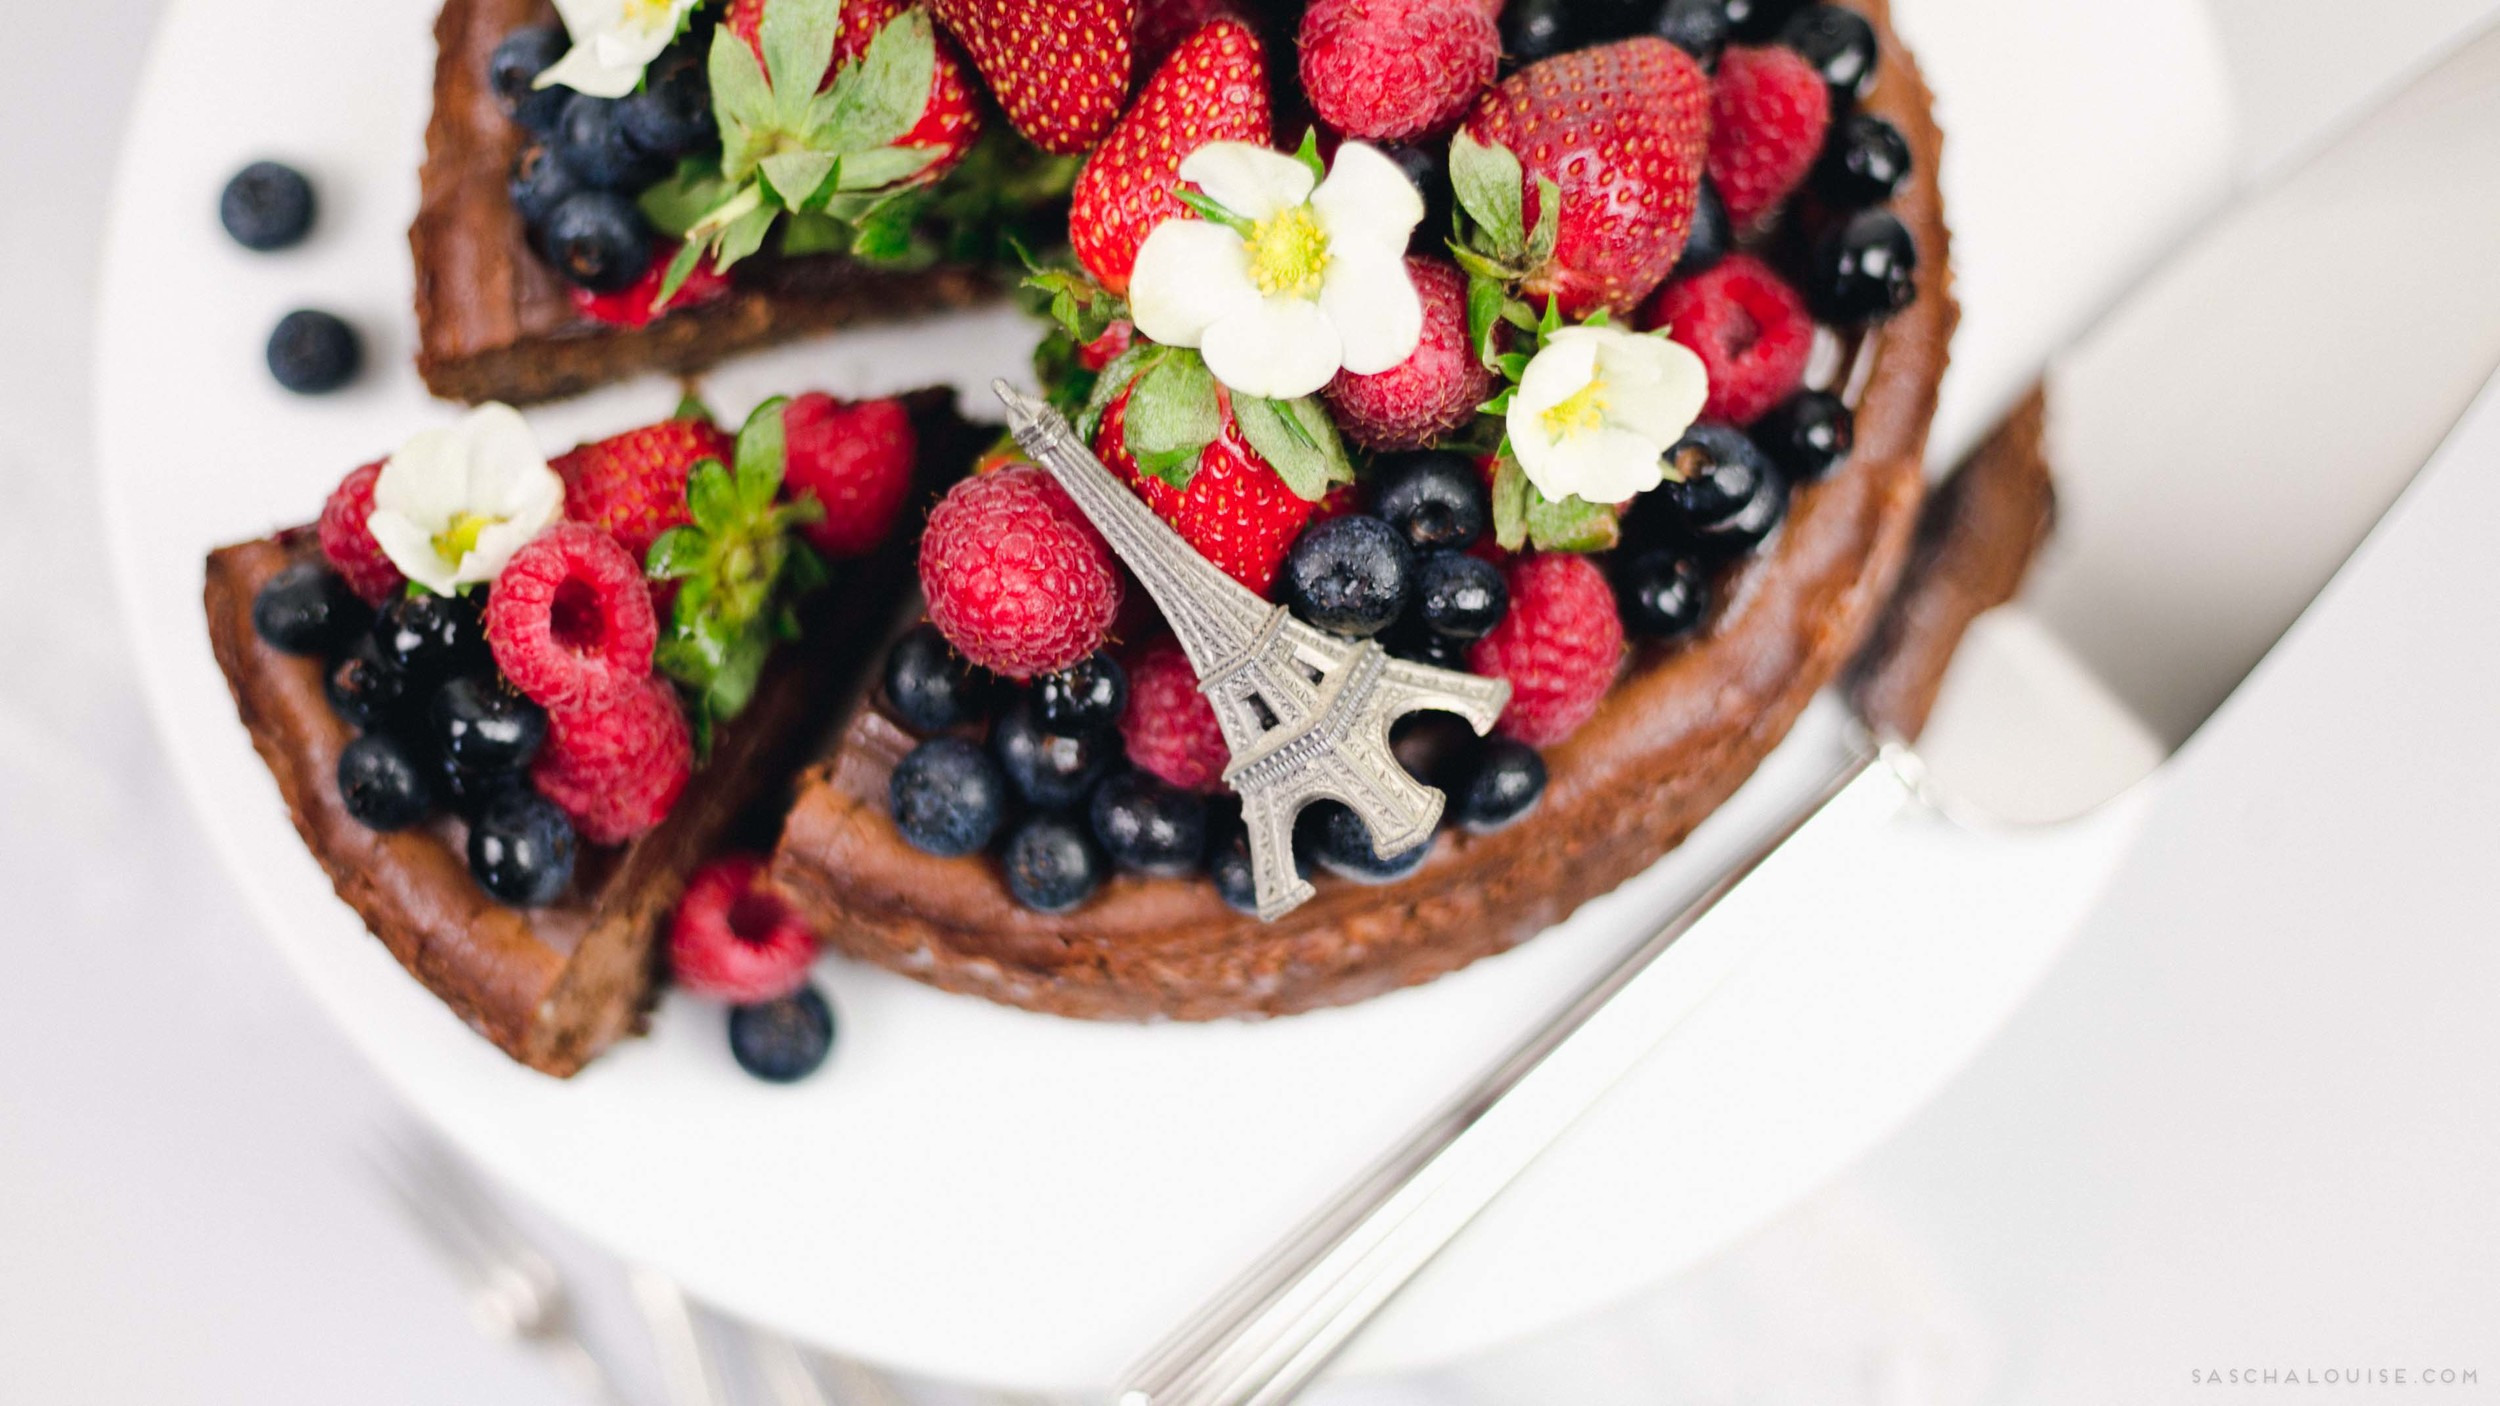 Baked Chocolate Cheesecake topped with fresh berries